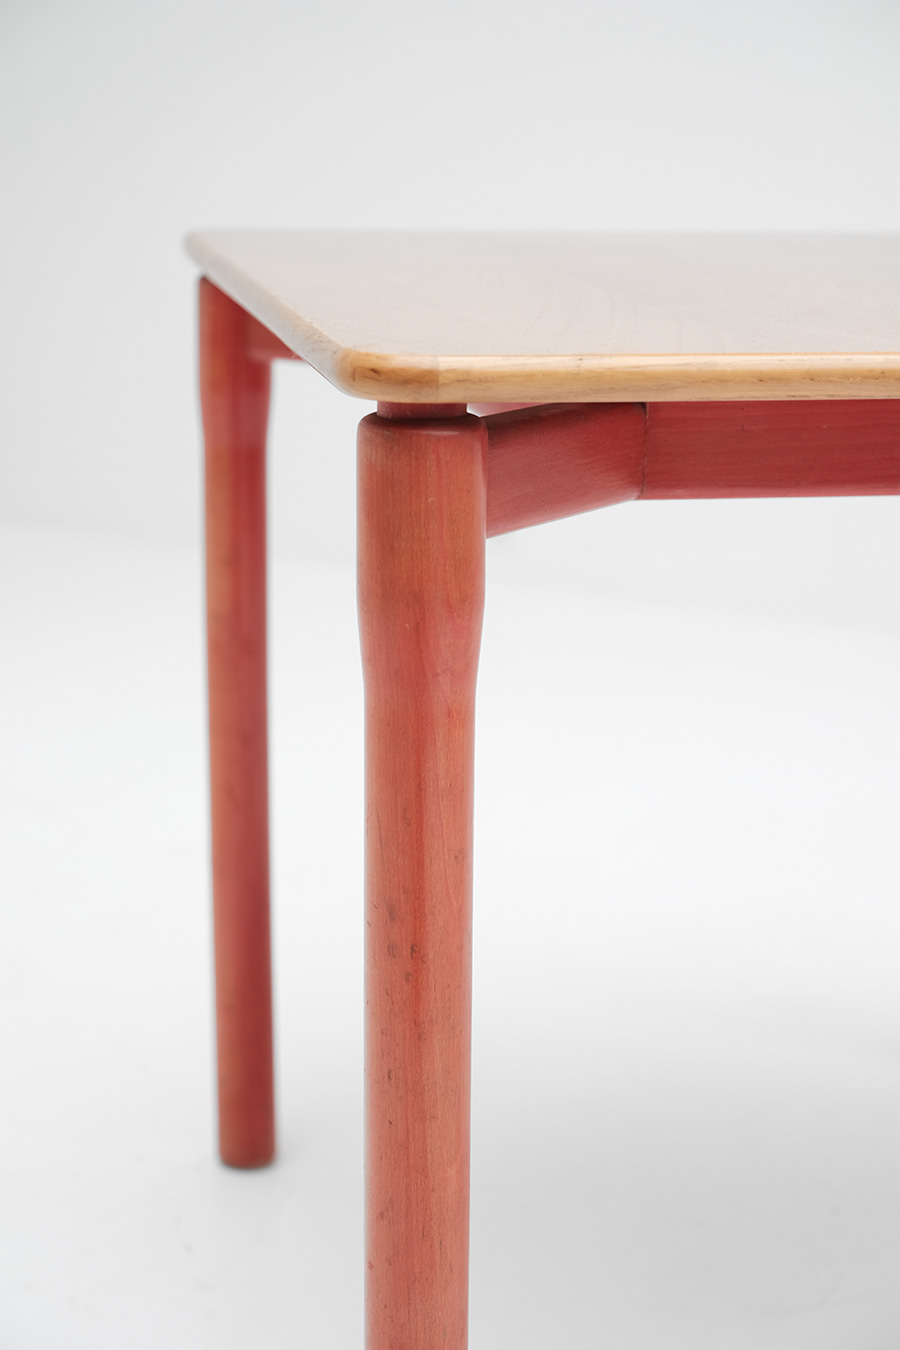 Vico Magistretti Carimate table